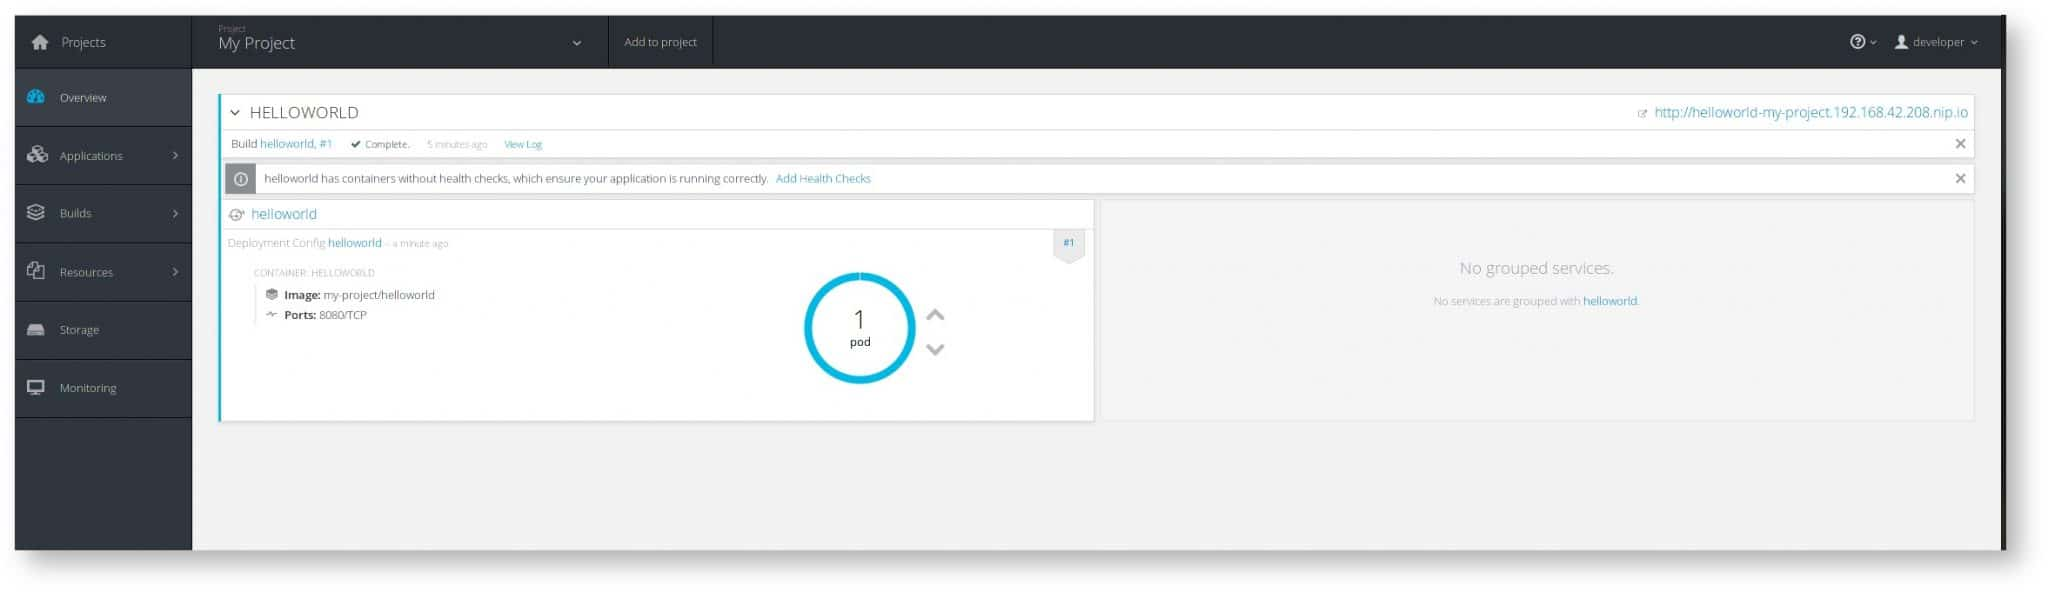 Getting Started: MiniShift - An OpenShift Origin All-in-One VM | Novatec